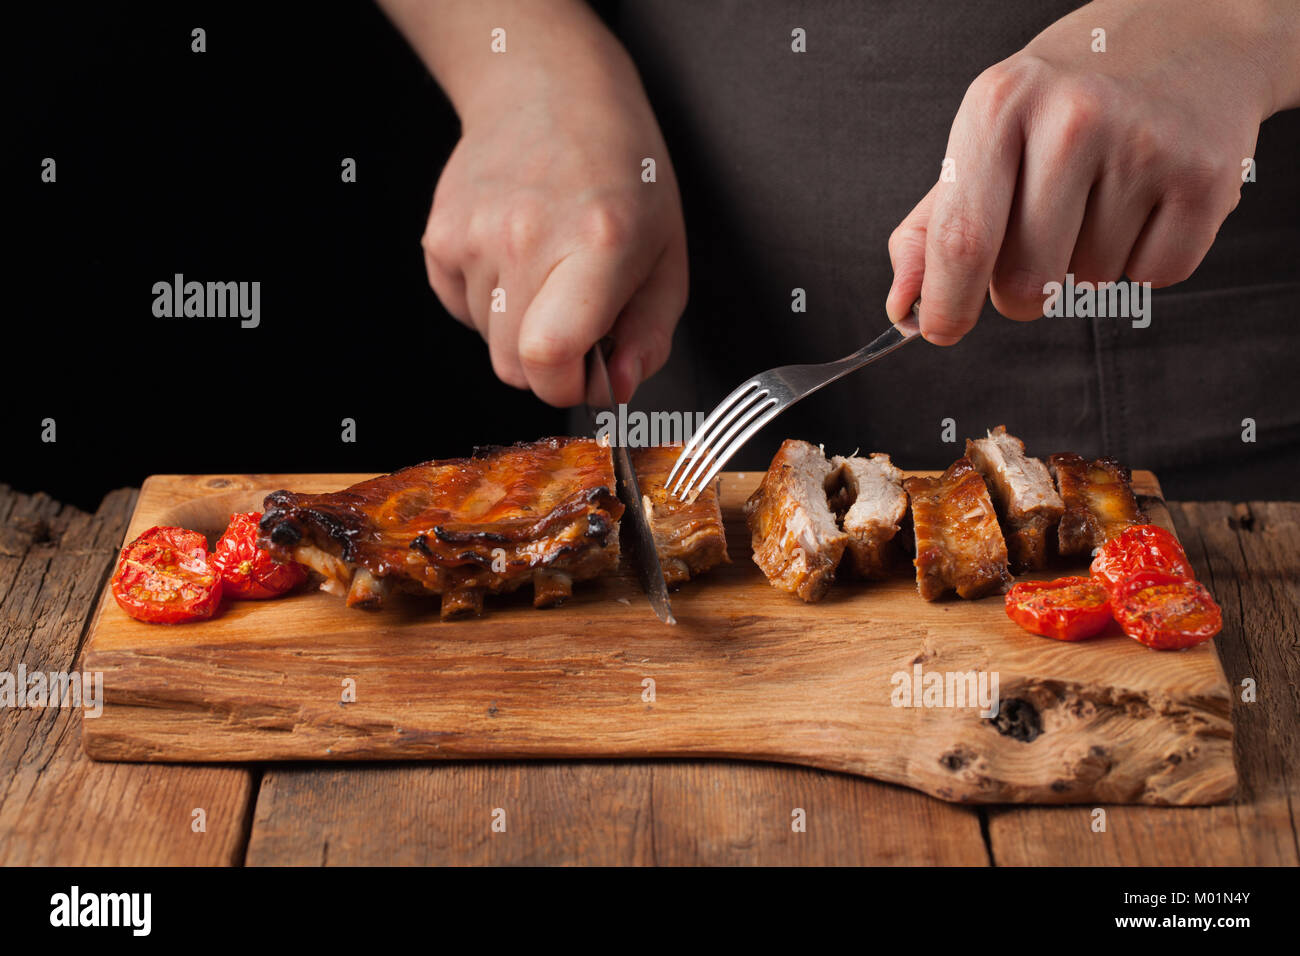 The chef cuts it with a sharp knife ready to eat pork ribs, lying on an old wooden table. A man prepares a snack - Stock Image